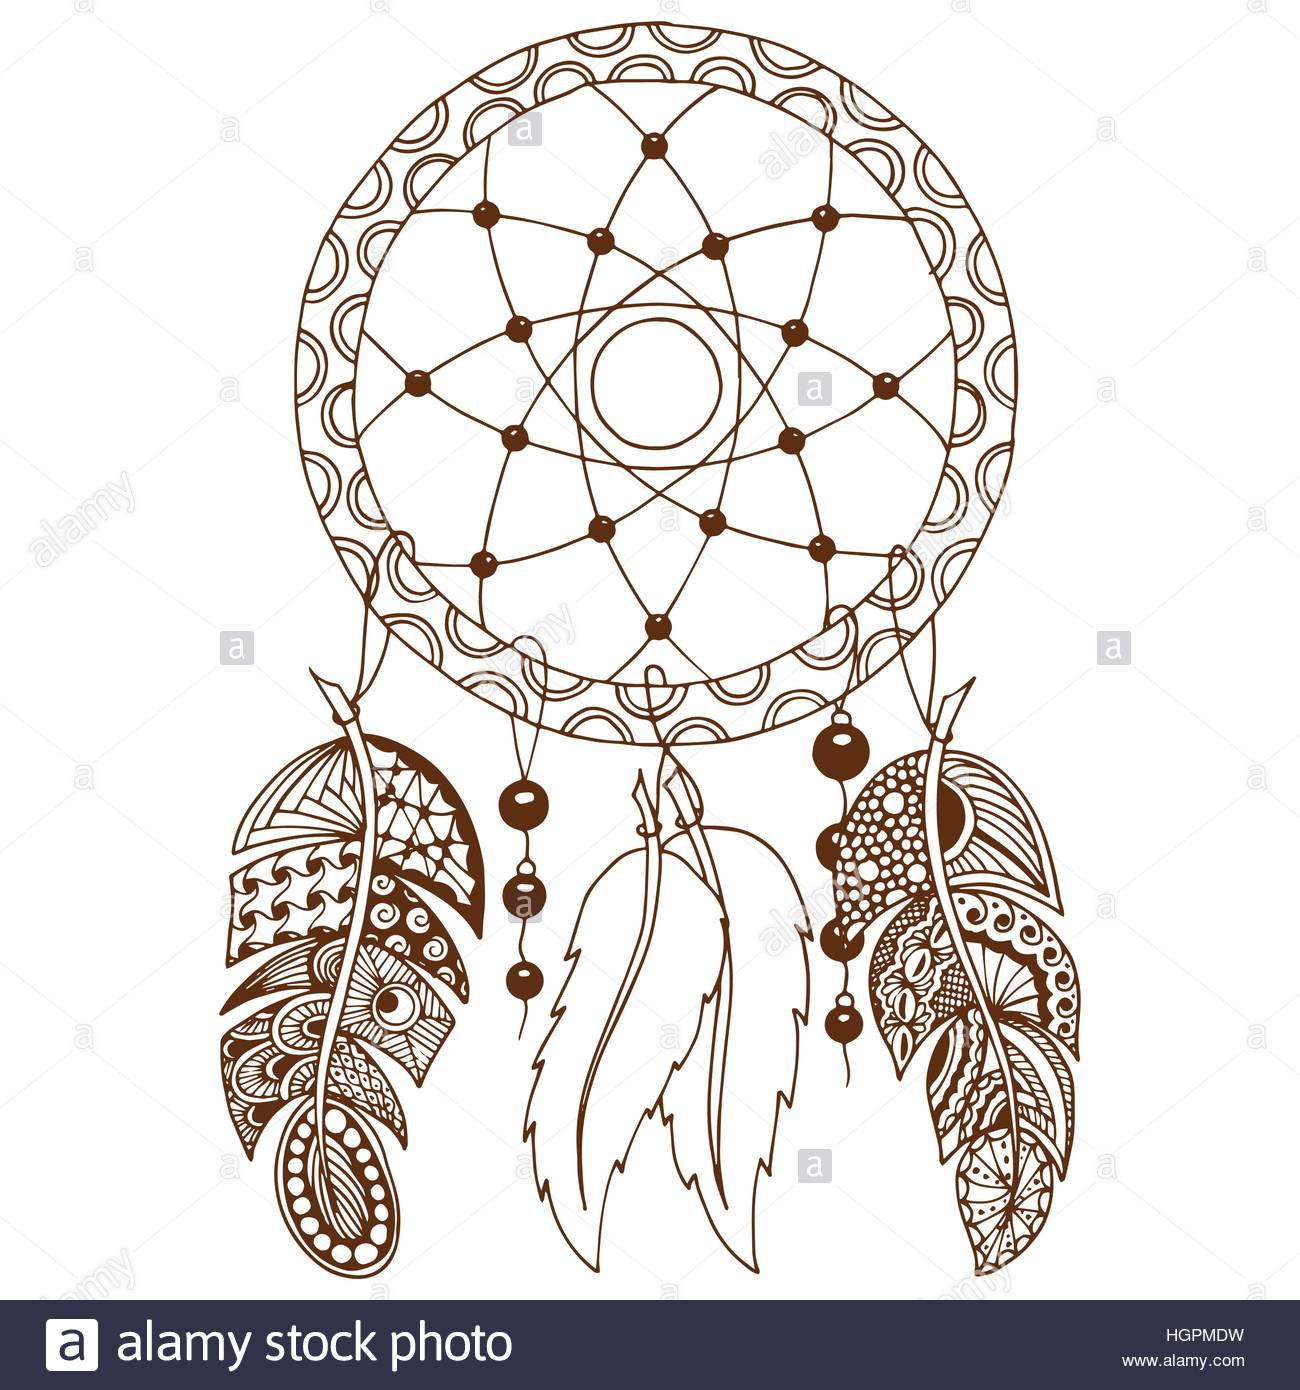 1300x1390 Hand Drawn Native American Indian Talisman Colored Dreamcatcher